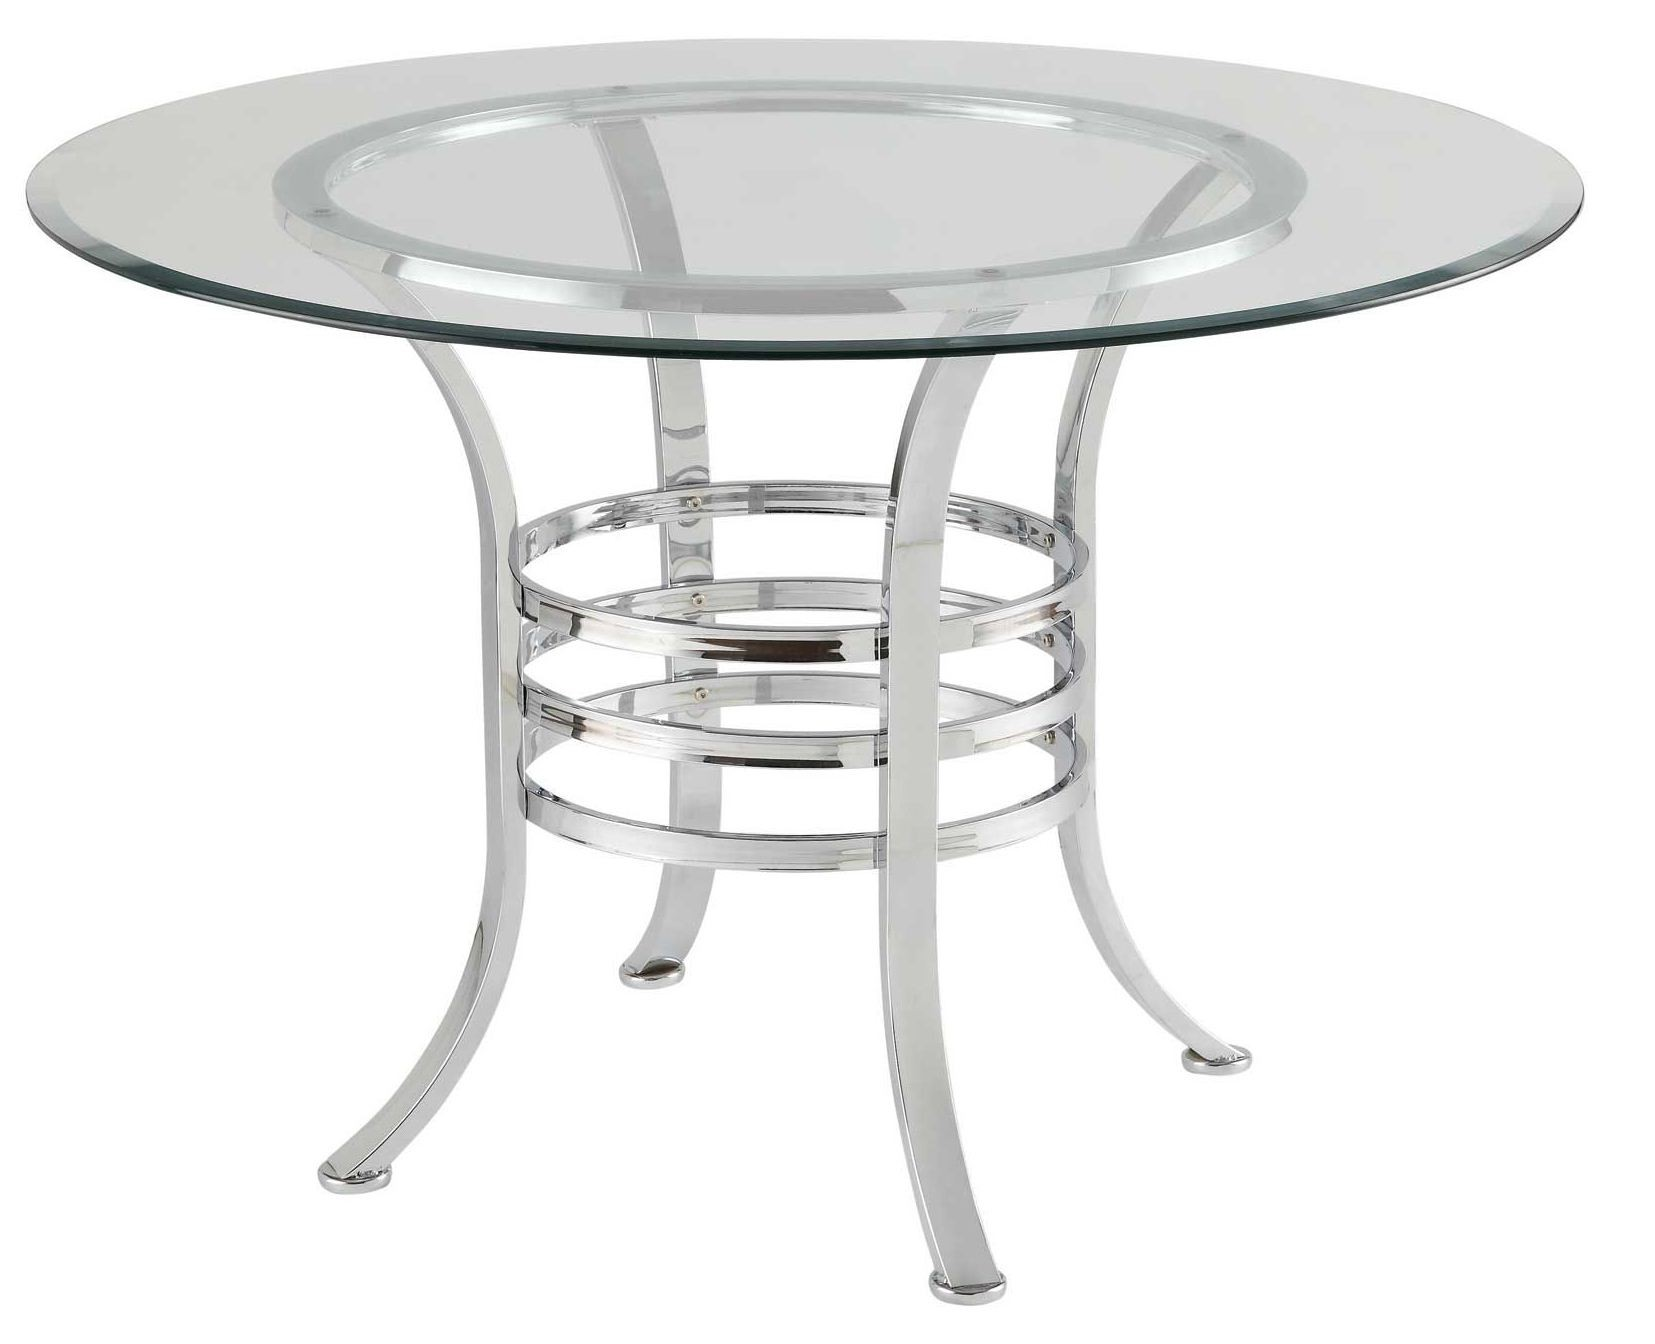 Aurora Round Dining Table from Coaster 121100 CB48RD  : 121100 cb48rd from colemanfurniture.com size 1655 x 1344 jpeg 141kB